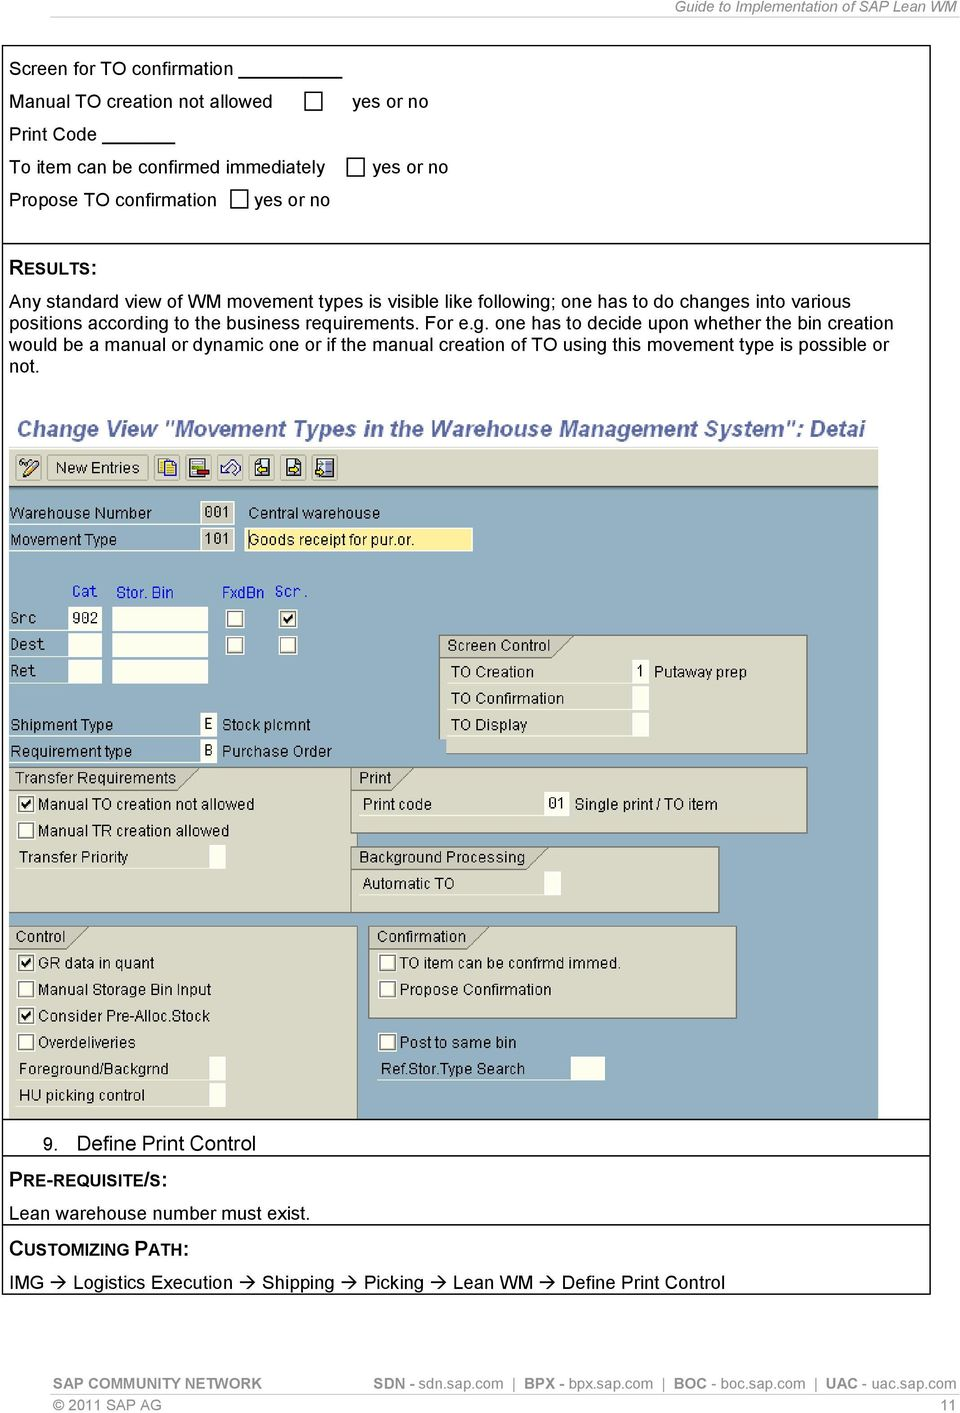 Guide to Implementation of SAP Lean WM - PDF